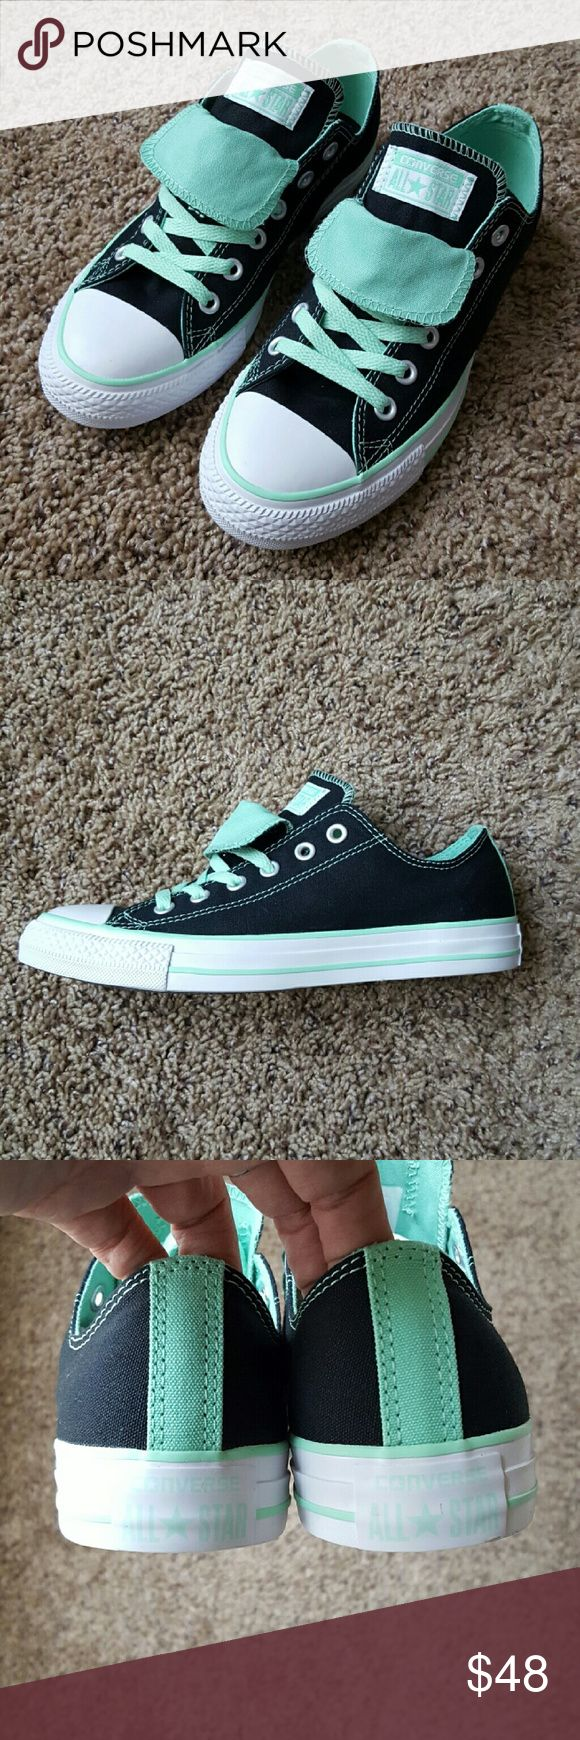 Converse All Star Sneakers Beautiful Converse in black & seafoam green. Double lace flaps creating a super cool look . Size 9 Converse Shoes Sneakers